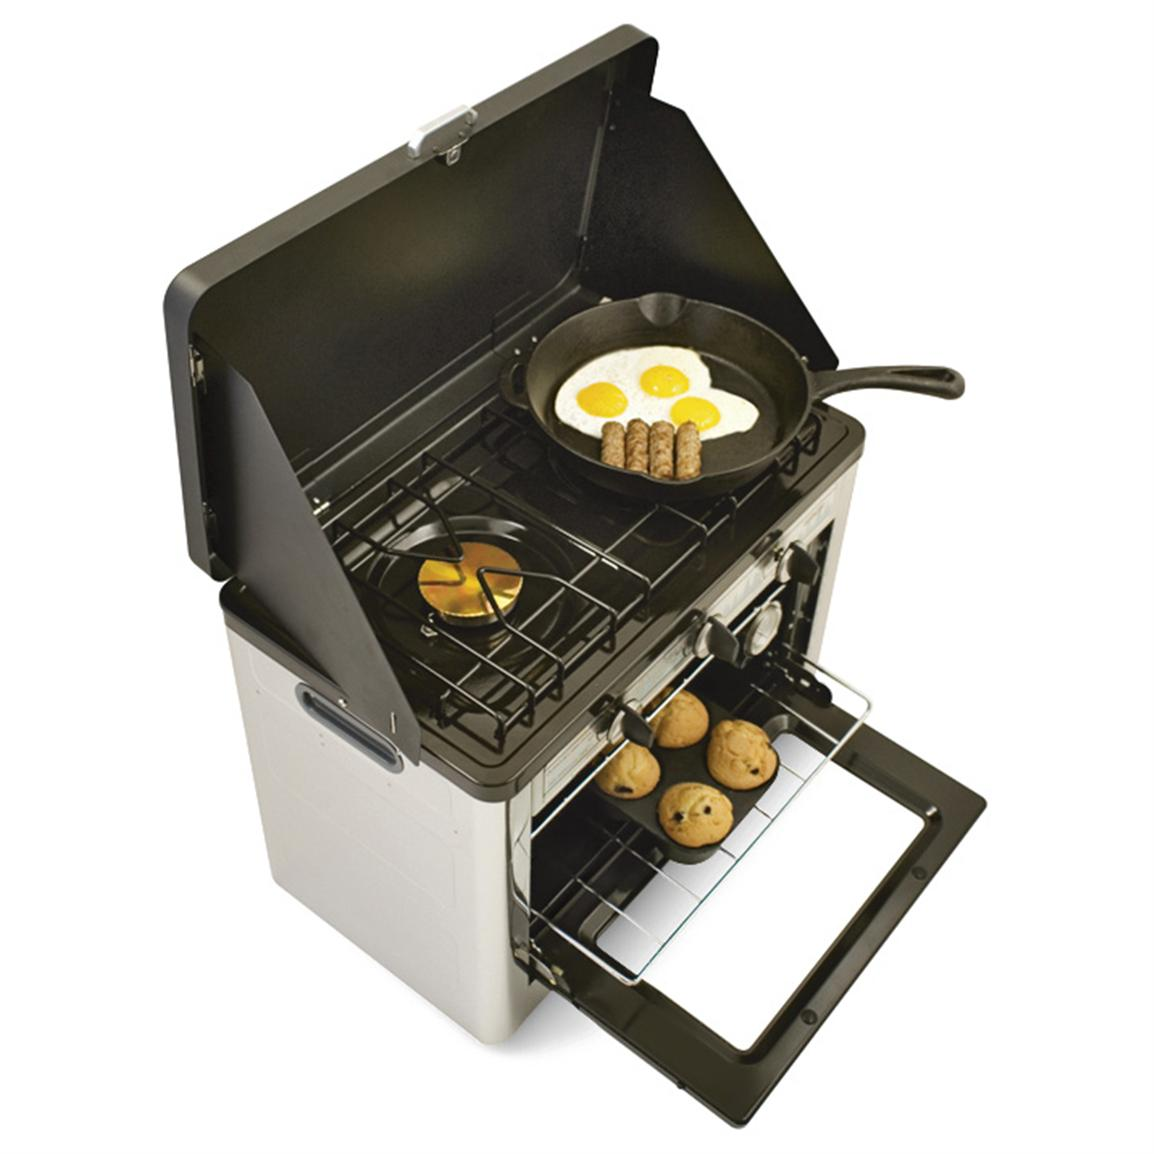 Camp Chef Portable Outdoor Stove Top Oven 134960